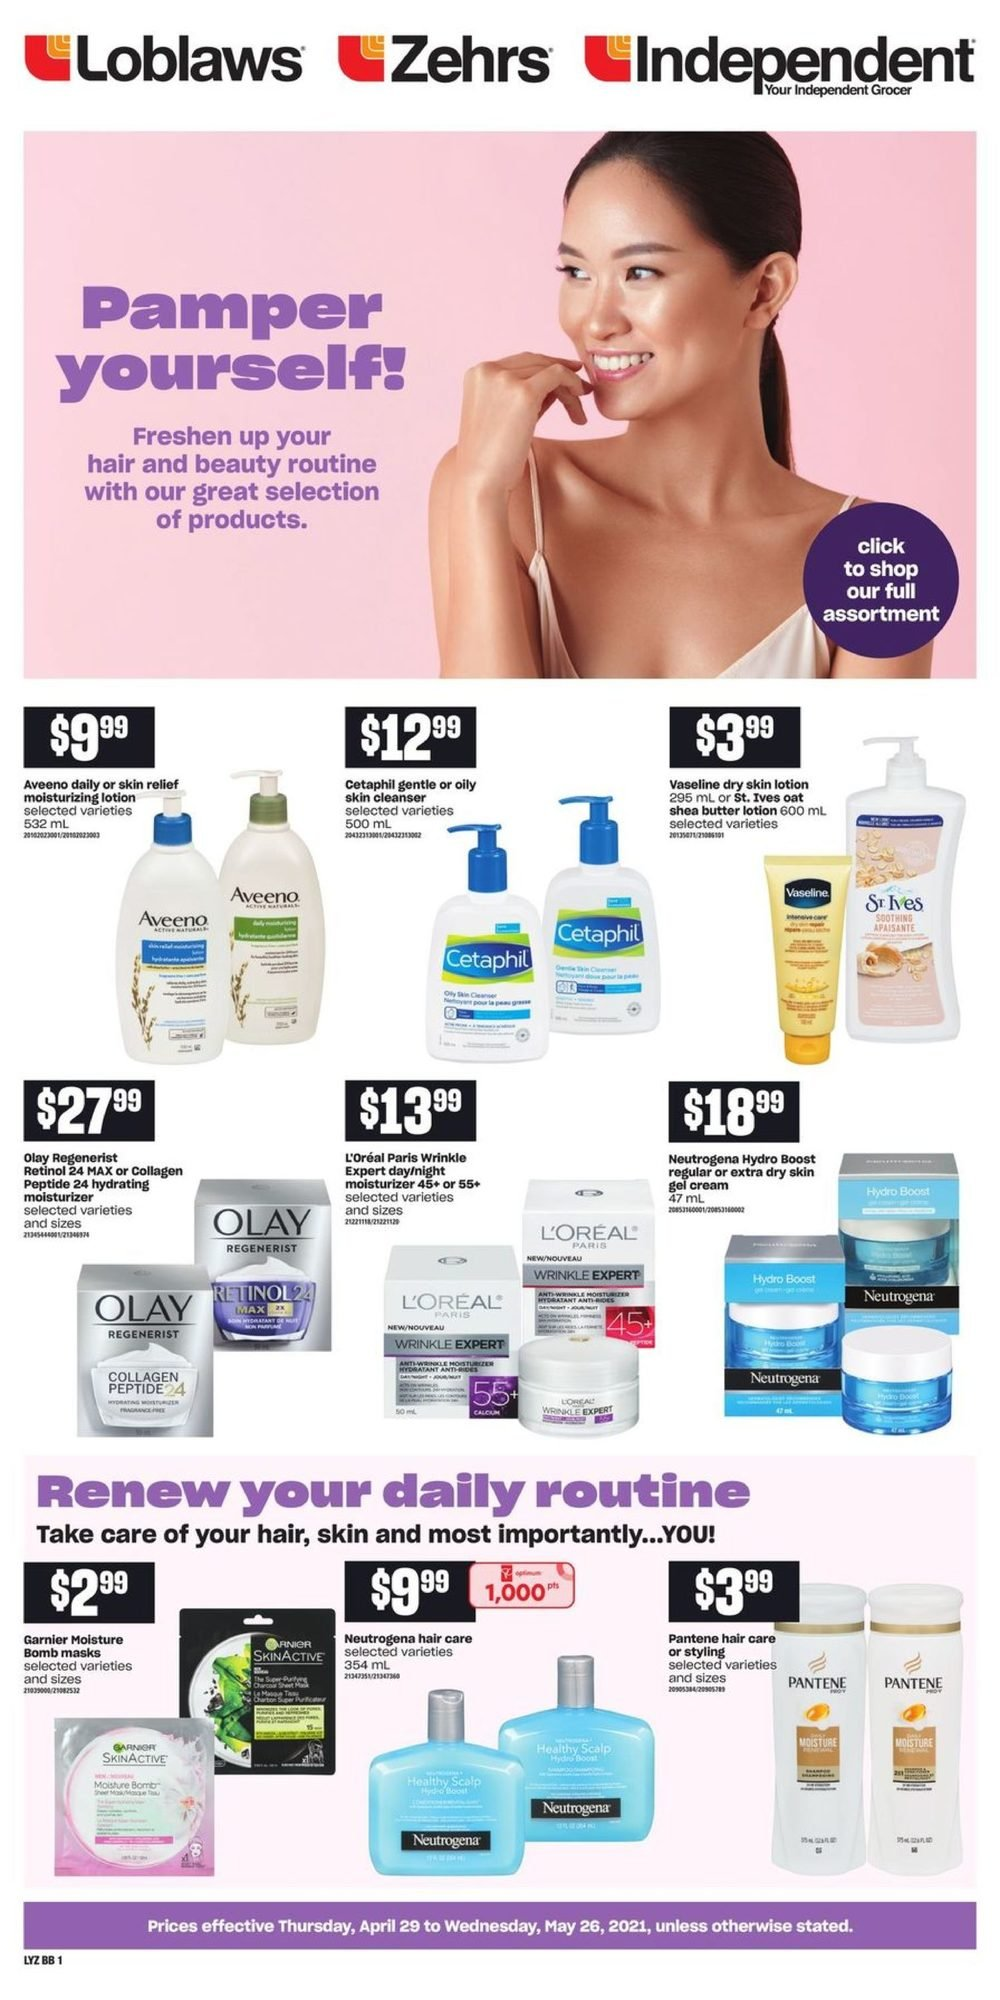 Loblaws - Beauty Book - Pamper Yourself!